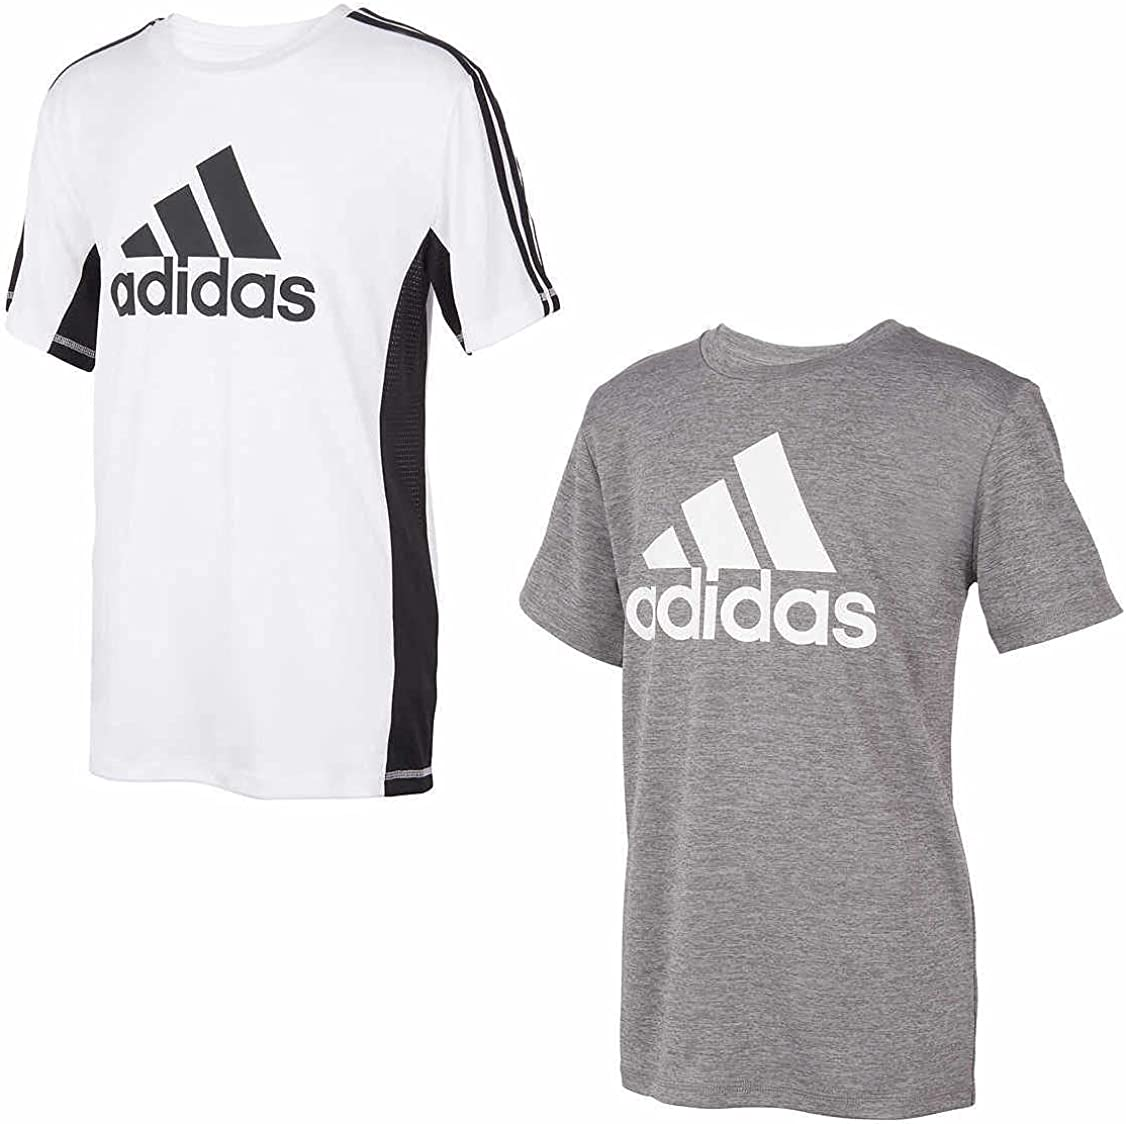 adidas Youth Boy's 2 Pack Performance Tees